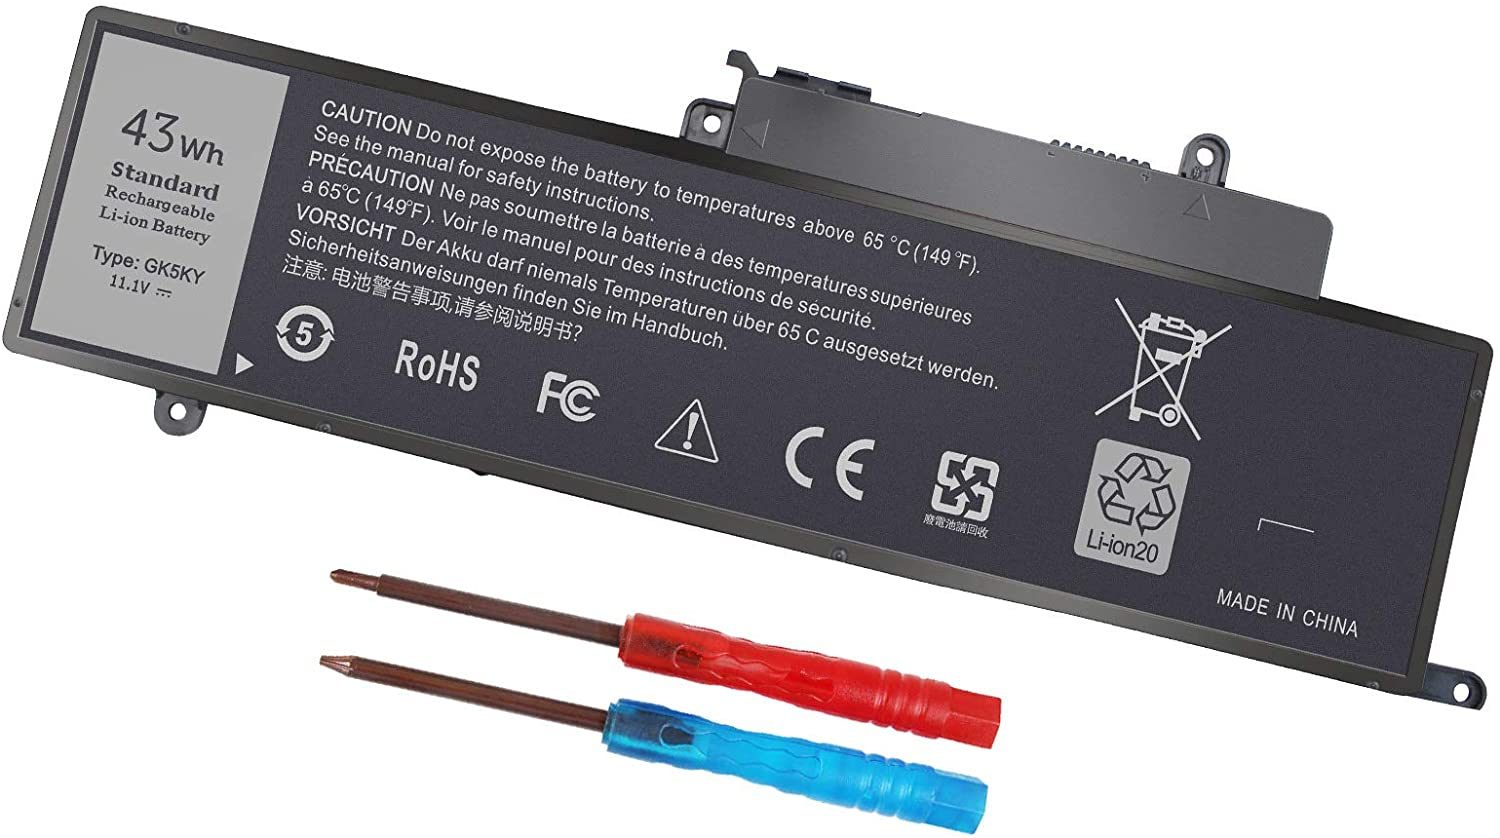 43WH GK5KY Battery for Dell Inspiron 11 3000 Series 3147 3148 3153 3152 3157 3158 15 7000 7558 7568 13 7353 7359 7347 7348 7352 4K8YH 92NCT 04K8YH RHN1C 0WF28 P20T P20T001 P55F P55F001 451-BBKK